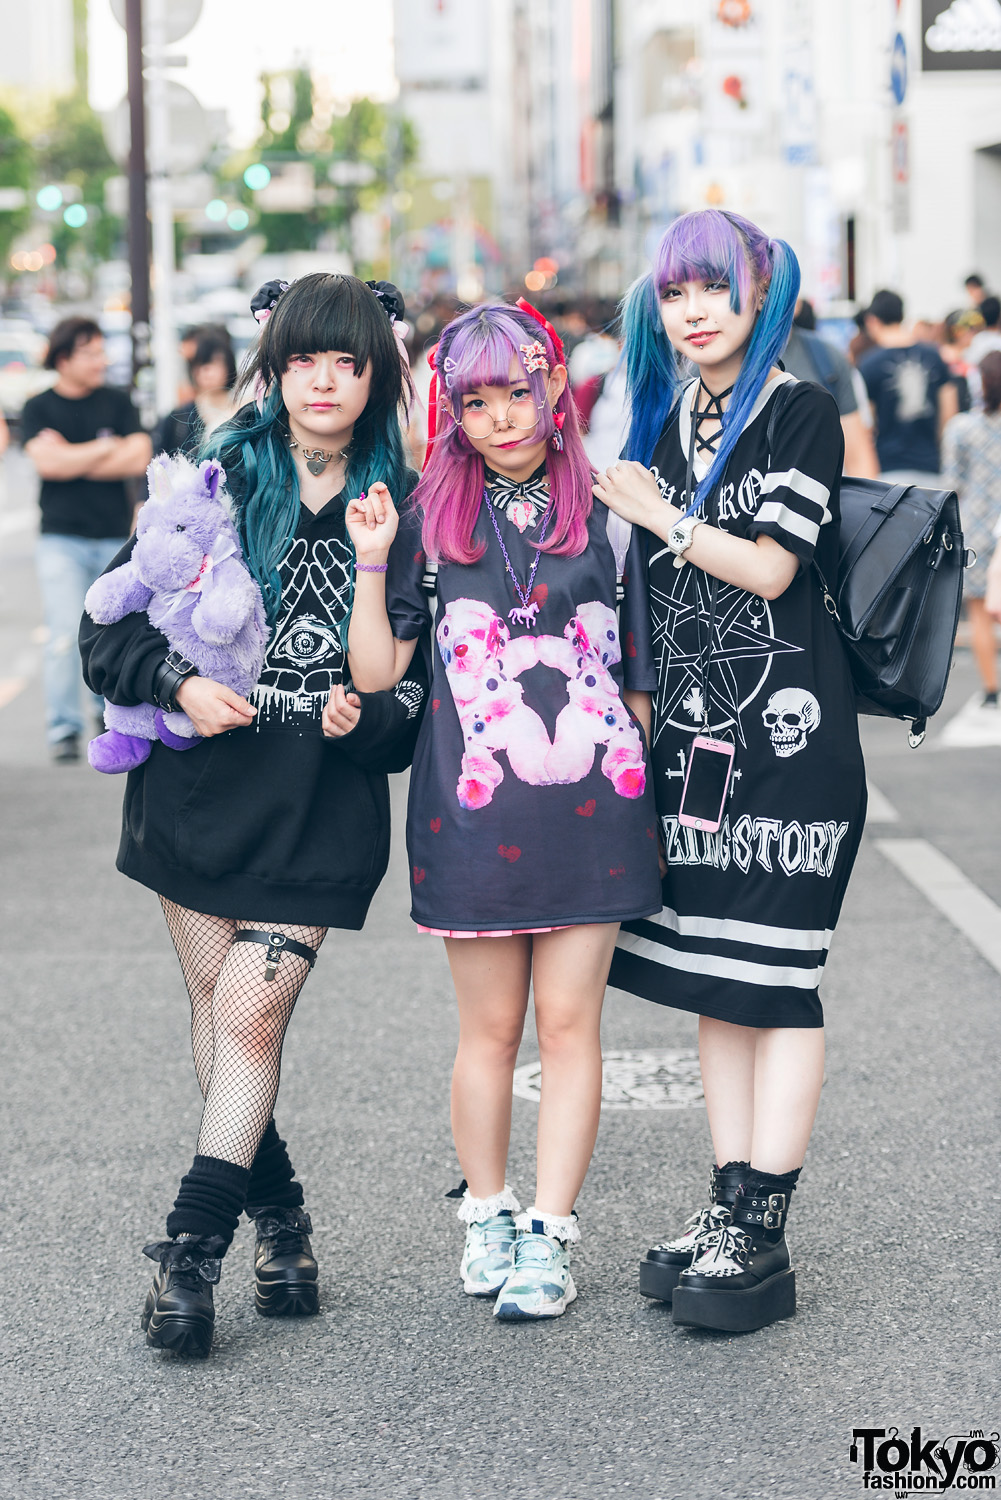 Image result for dark kawaii street fashion